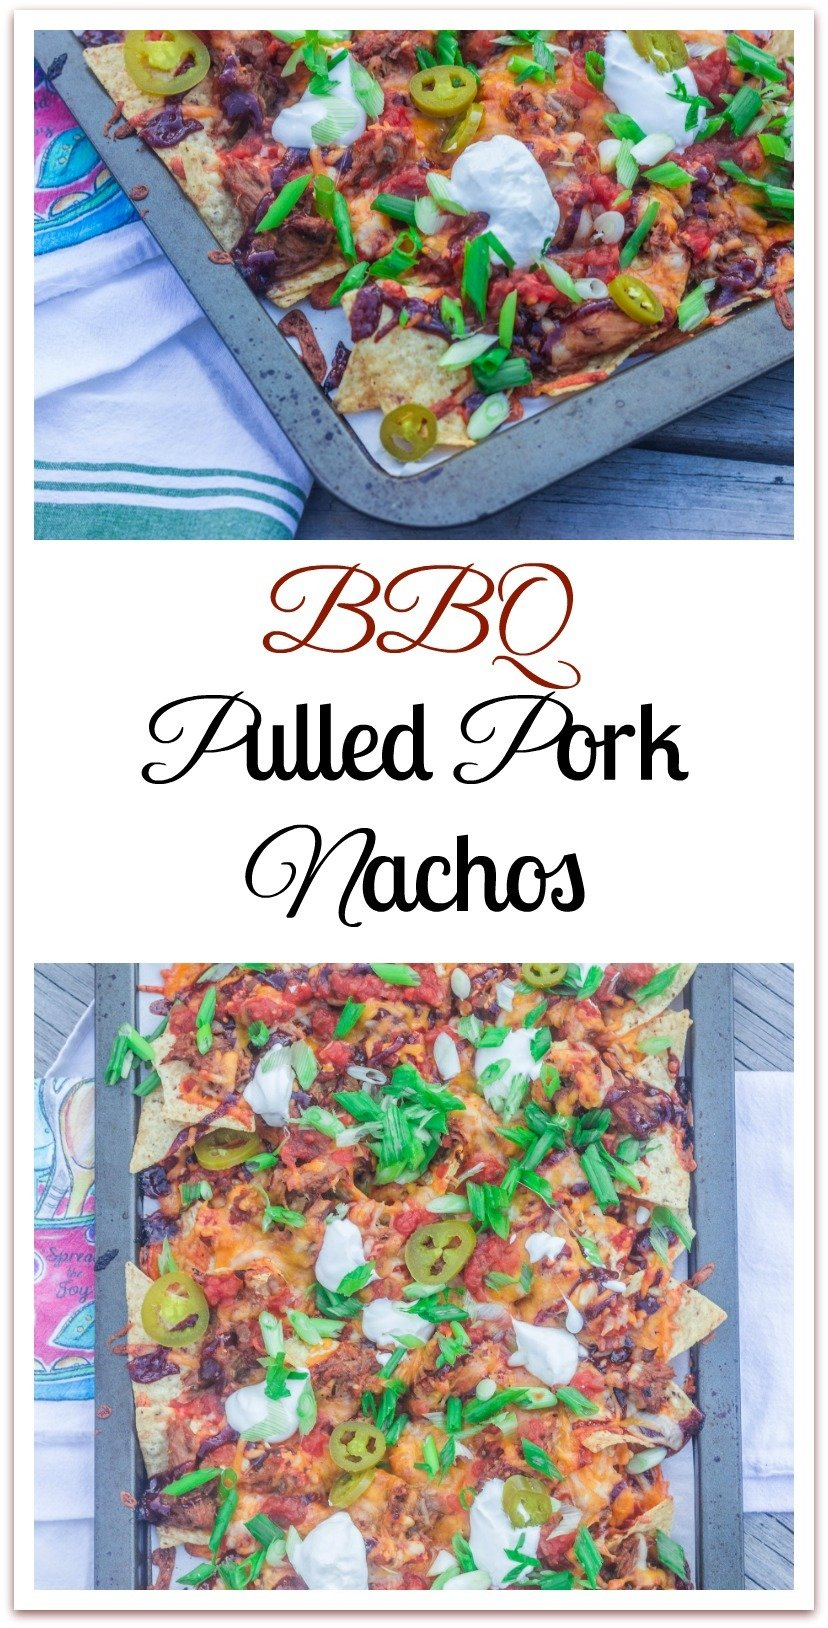 Sheet-Pan Barbeque Pulled Pork Nachos. Leftover pulled pork, barbeque sauce, and favorite toppings on a bed of tortilla chips. Bake until cheese melts. #PulledPorkNachos #SheetPanNachos